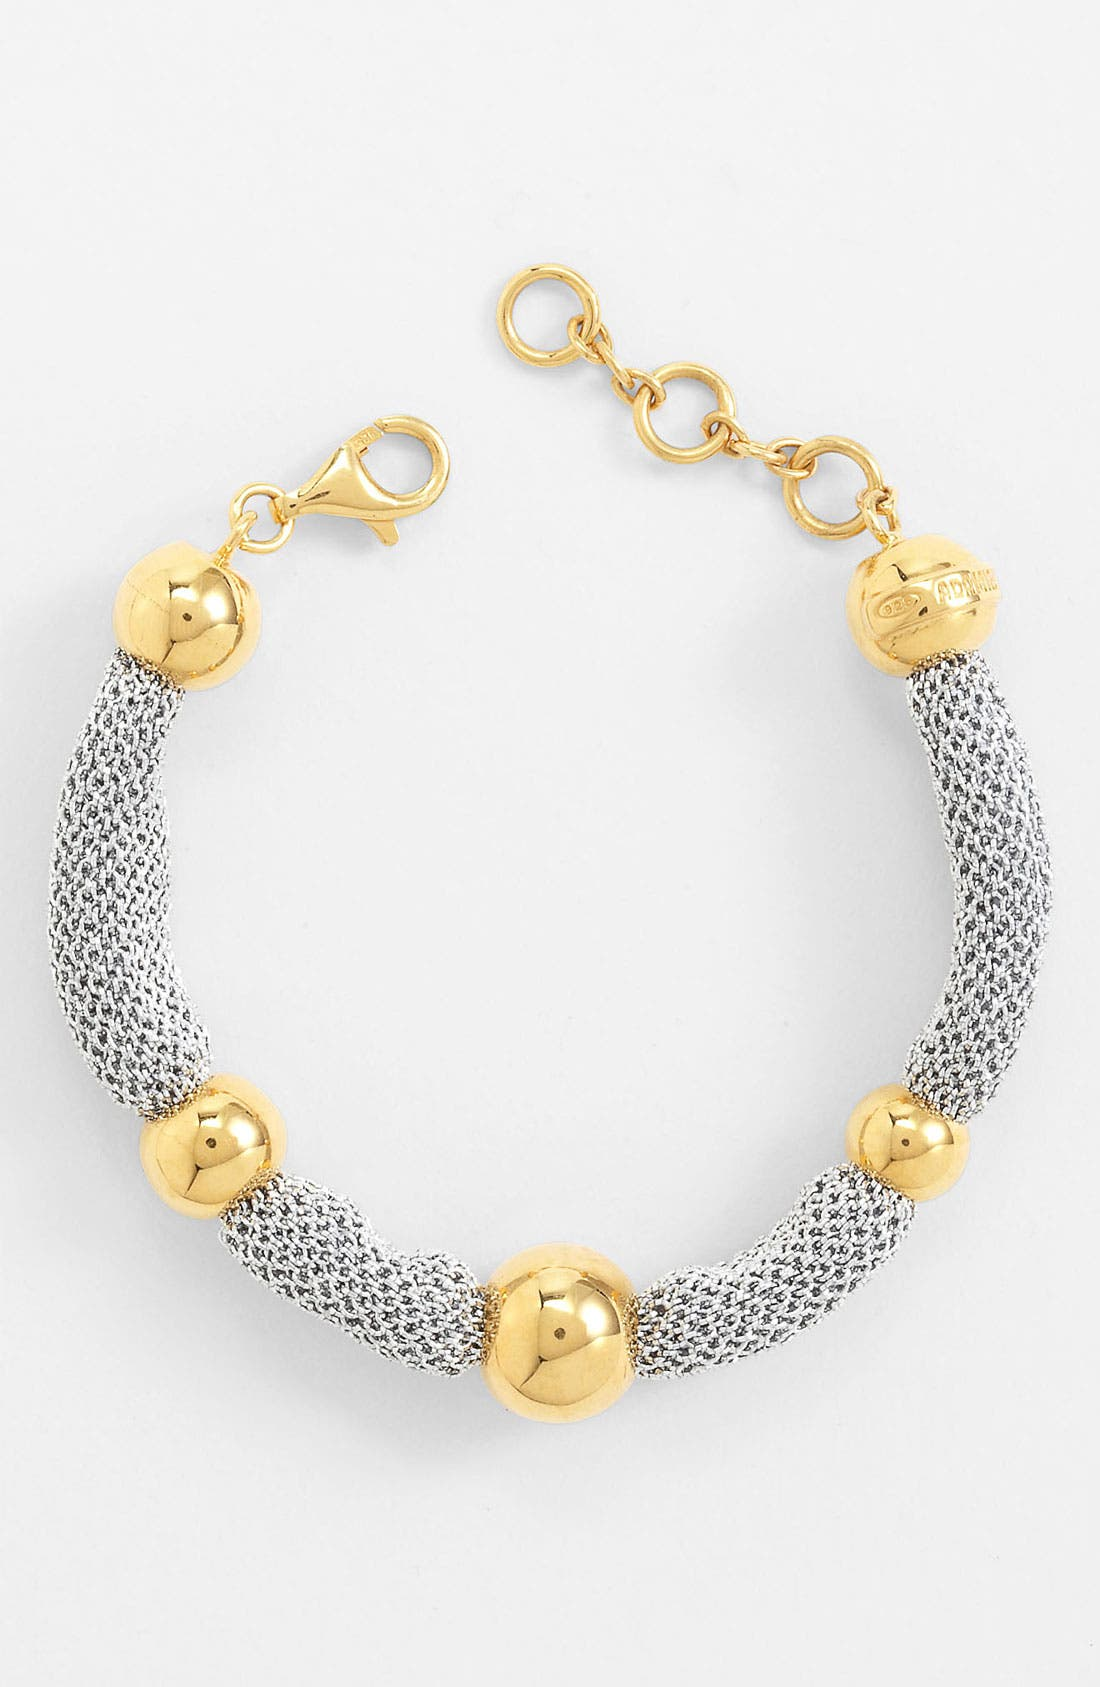 Alternate Image 1 Selected - Adami & Martucci 'Mesh' Station Bracelet (Nordstrom Exclusive)